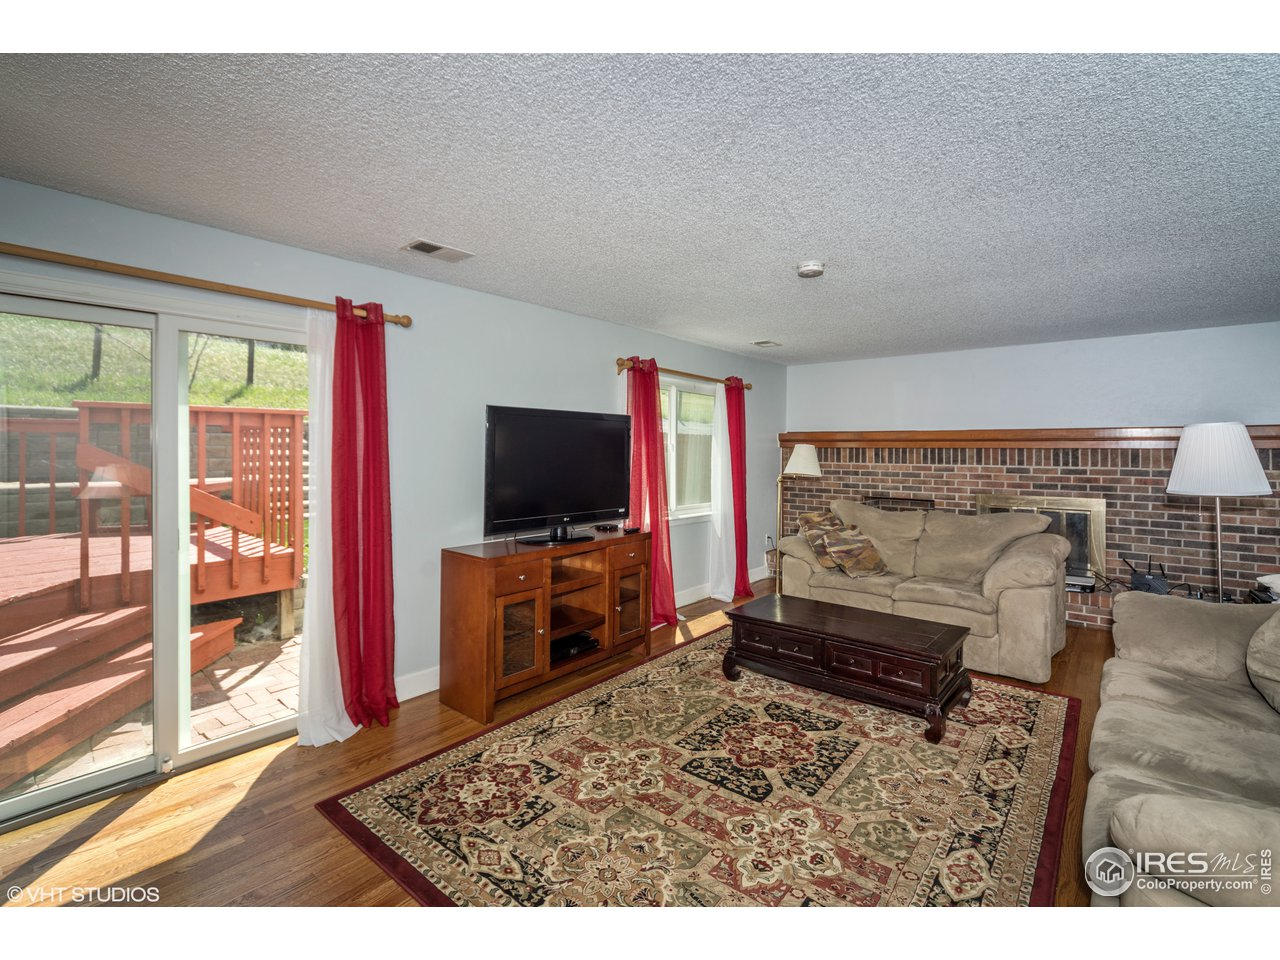 Family room with access to backyard